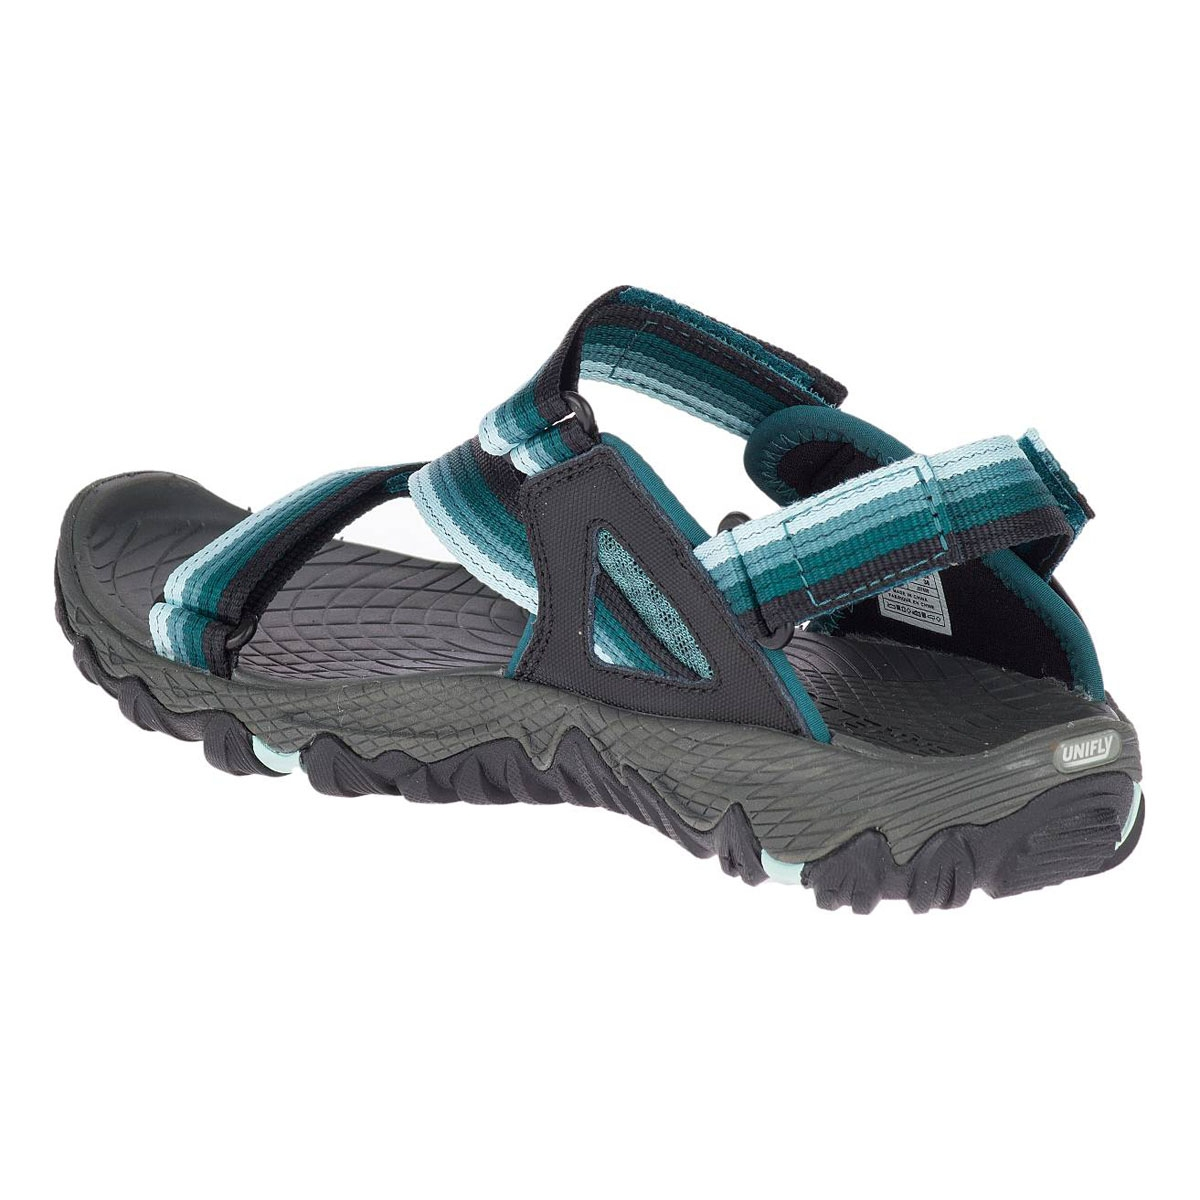 163525bd1628 ... Image of Merrell All Out Blaze Web Sandals (Women s) - Sea Pine ...